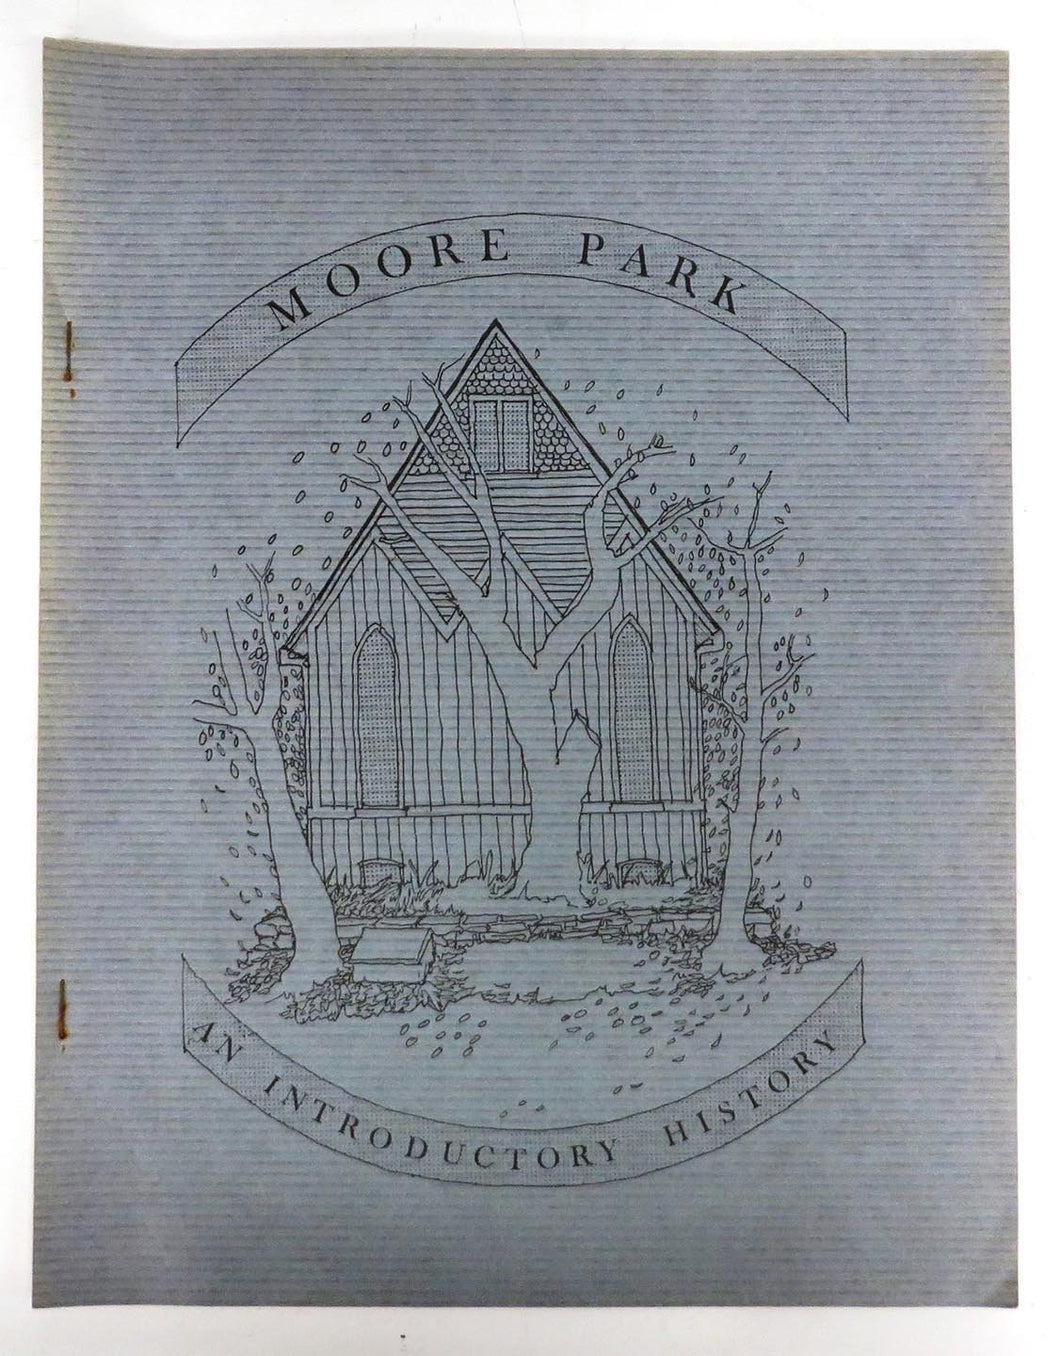 Moore Park: An Introductory History